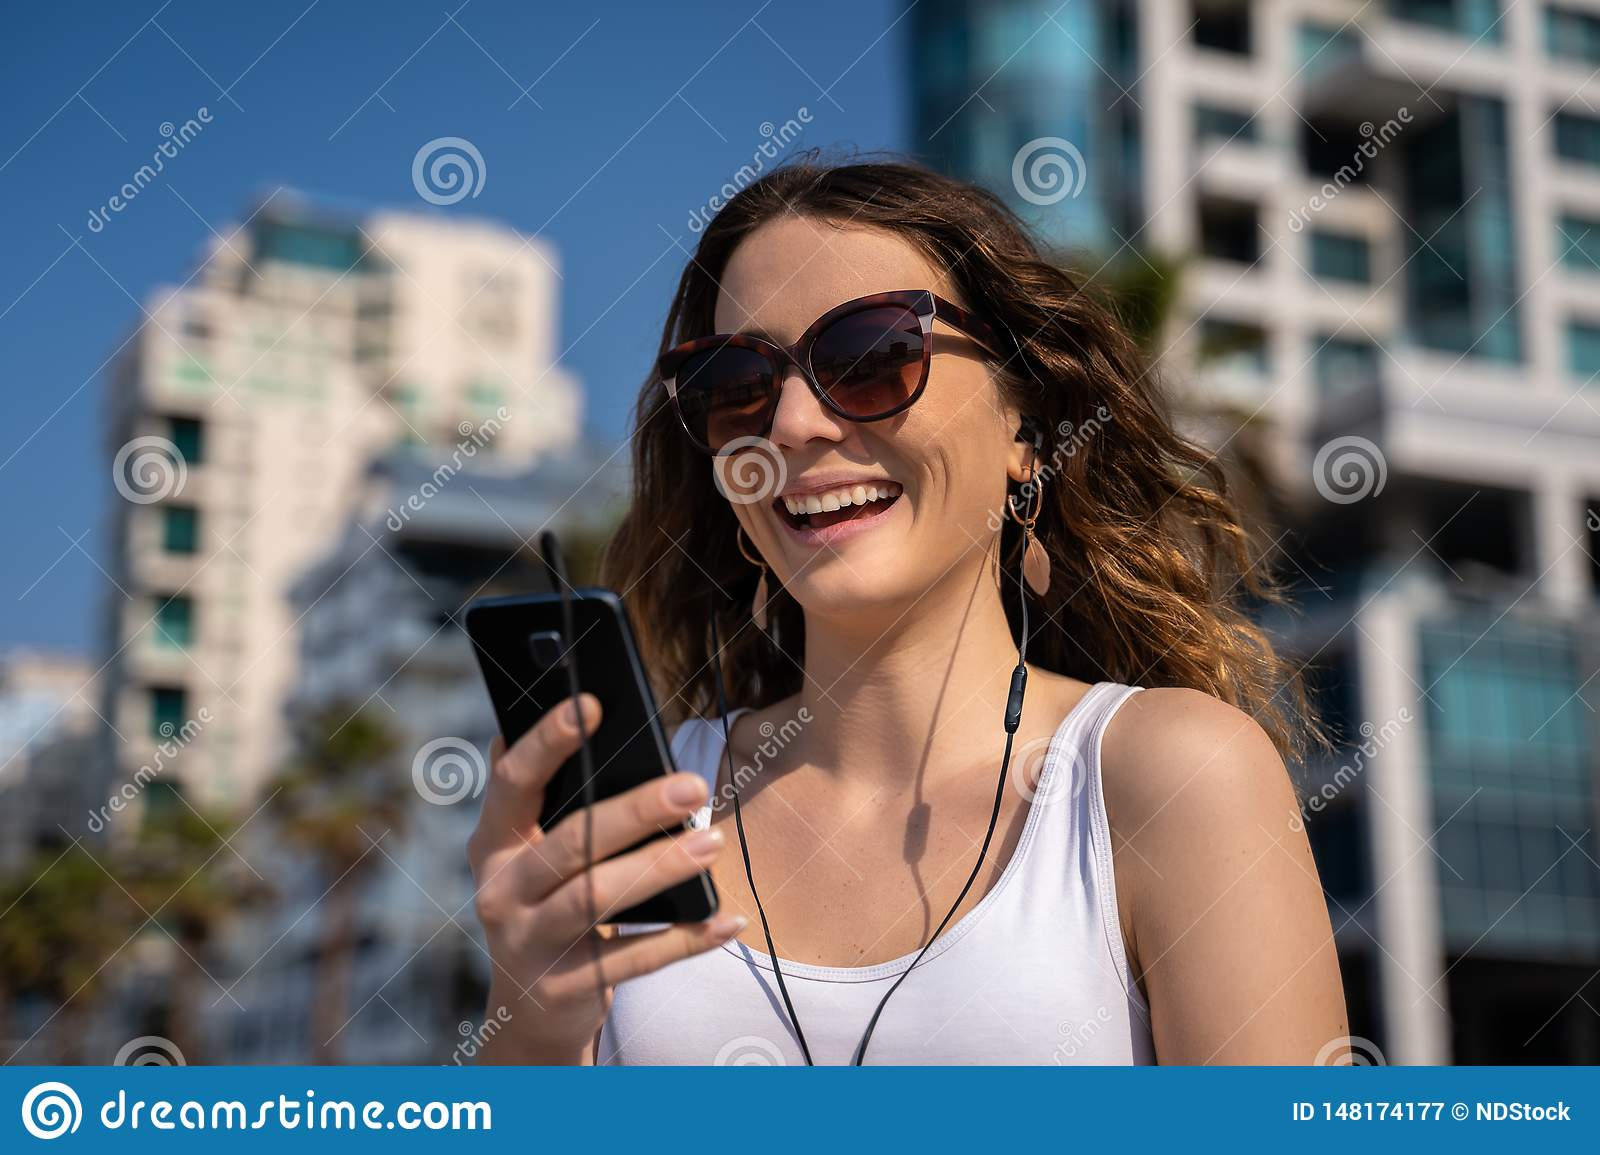 Young Woman Using The Phone With Headset City Skyline In Background Stock Image Image Of Enjoying Cell 148174177